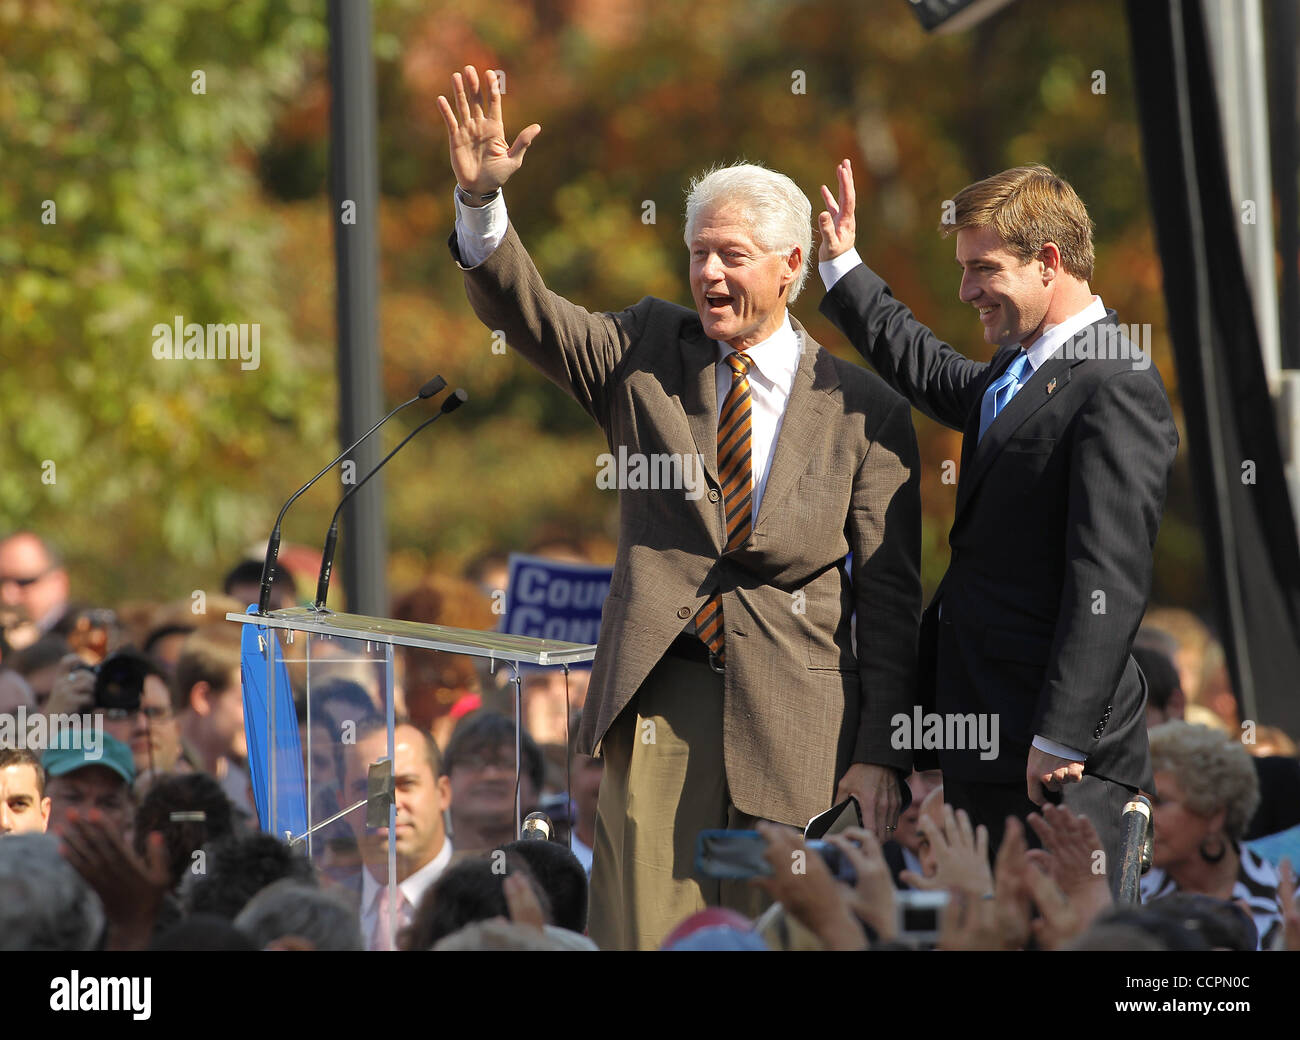 October 11, 2010 - Lexington, Kentucky, U.S. - President BILL CLINTON waves to the crowd after rallying them for - Stock Image